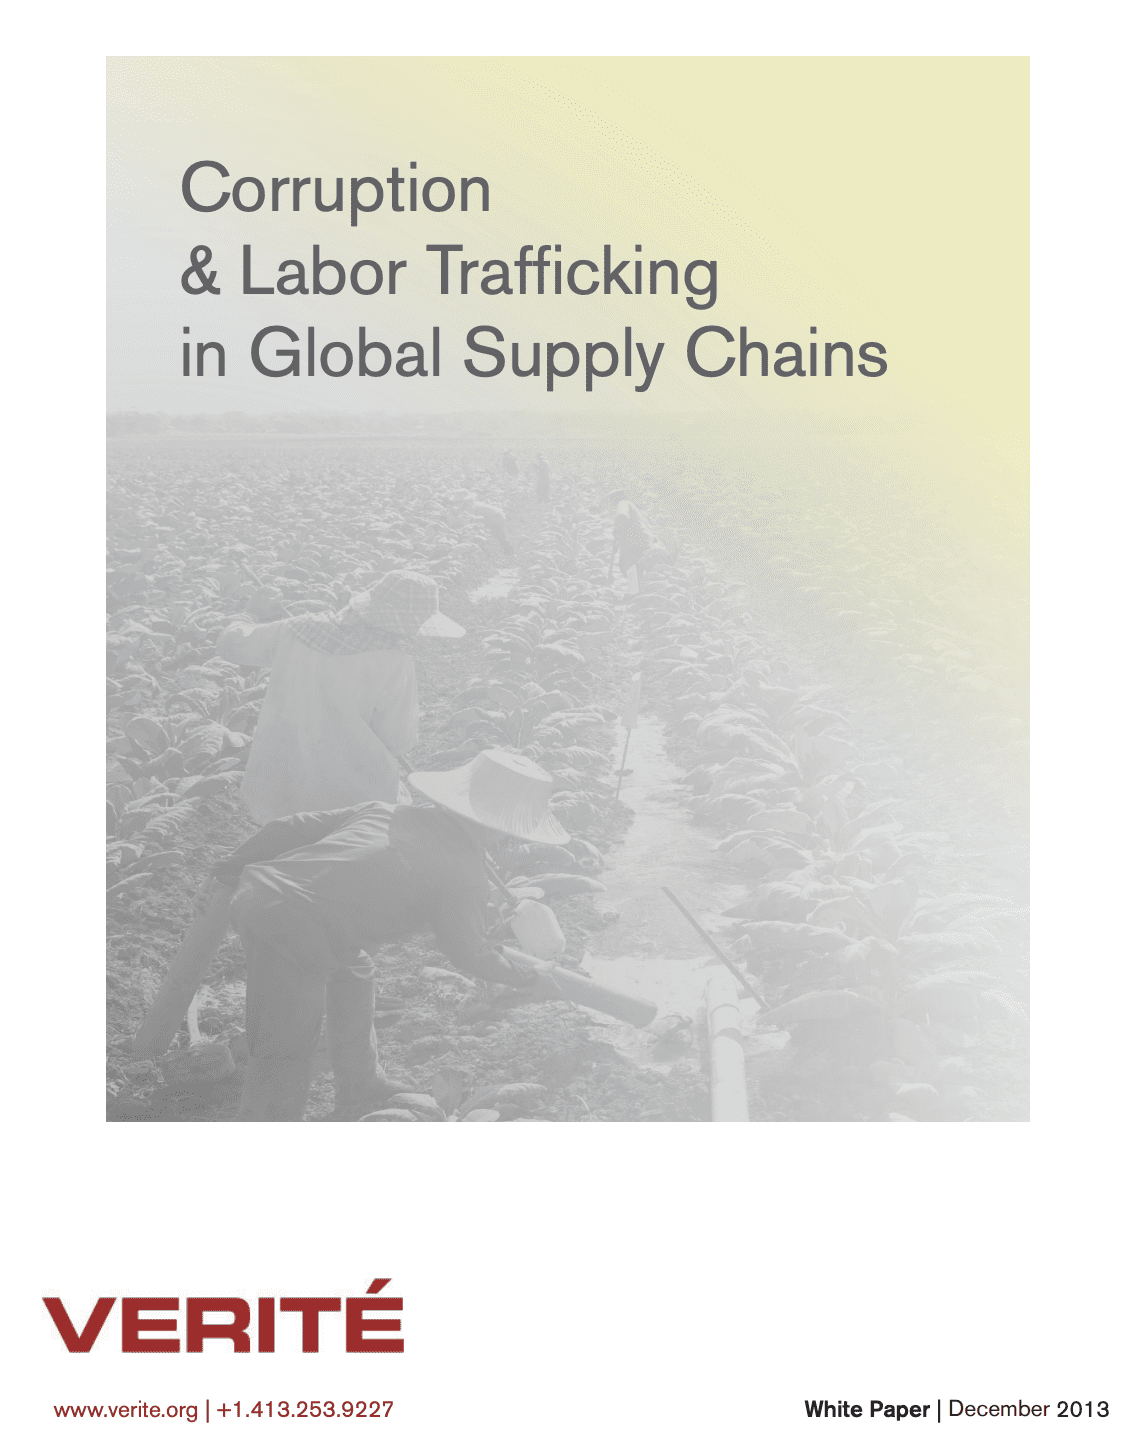 Corruption & Labor Trafficking in Global Supply Chains